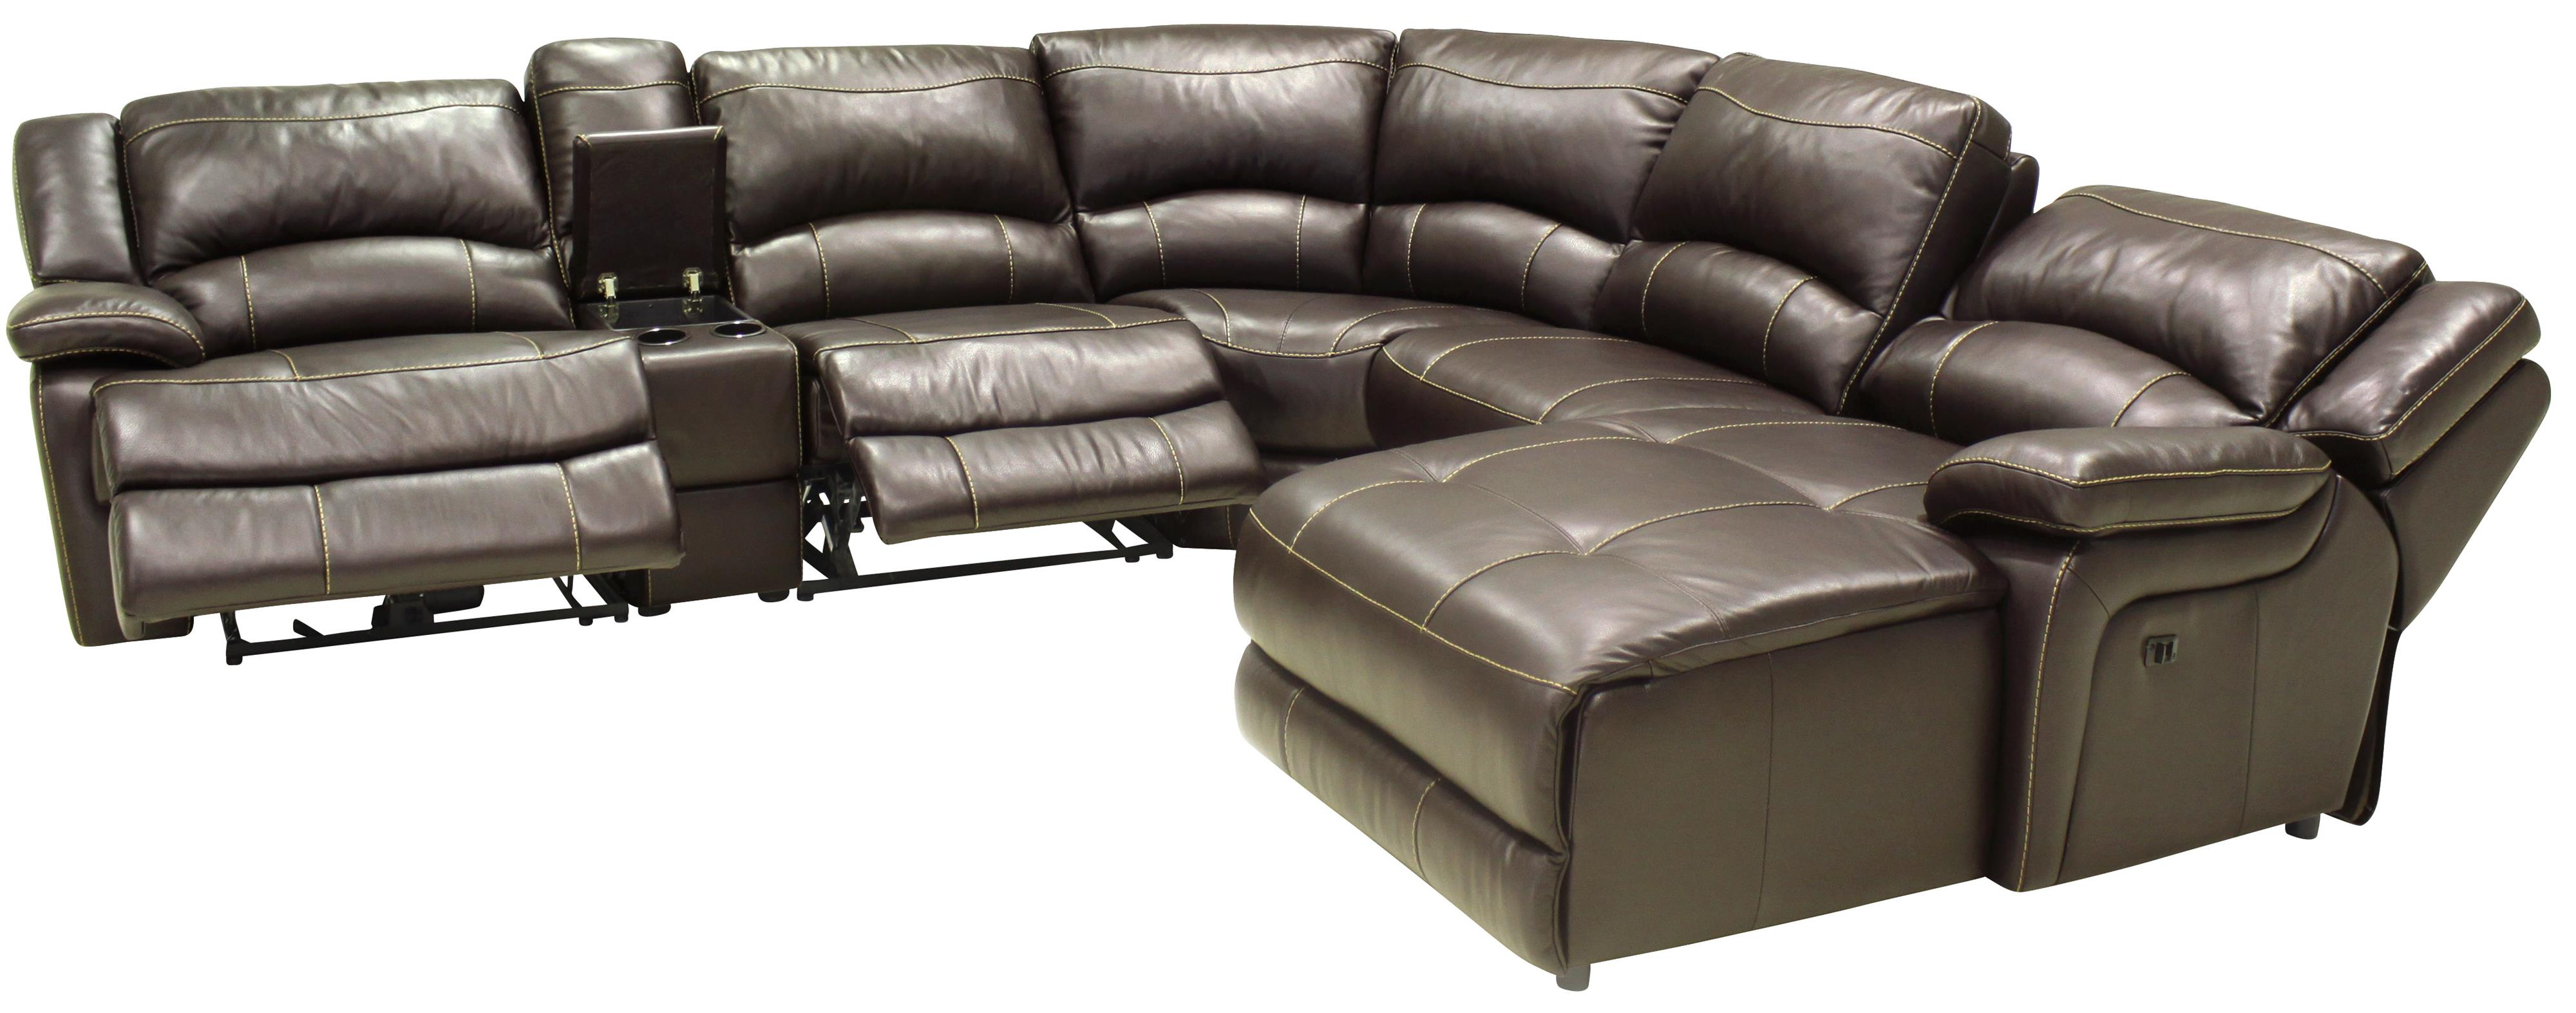 Htl T118 Casual Reclining Leather Sectional Sofa With Right Arm Facing Chaise Wilson S Furniture Reclining Sectional Sofas